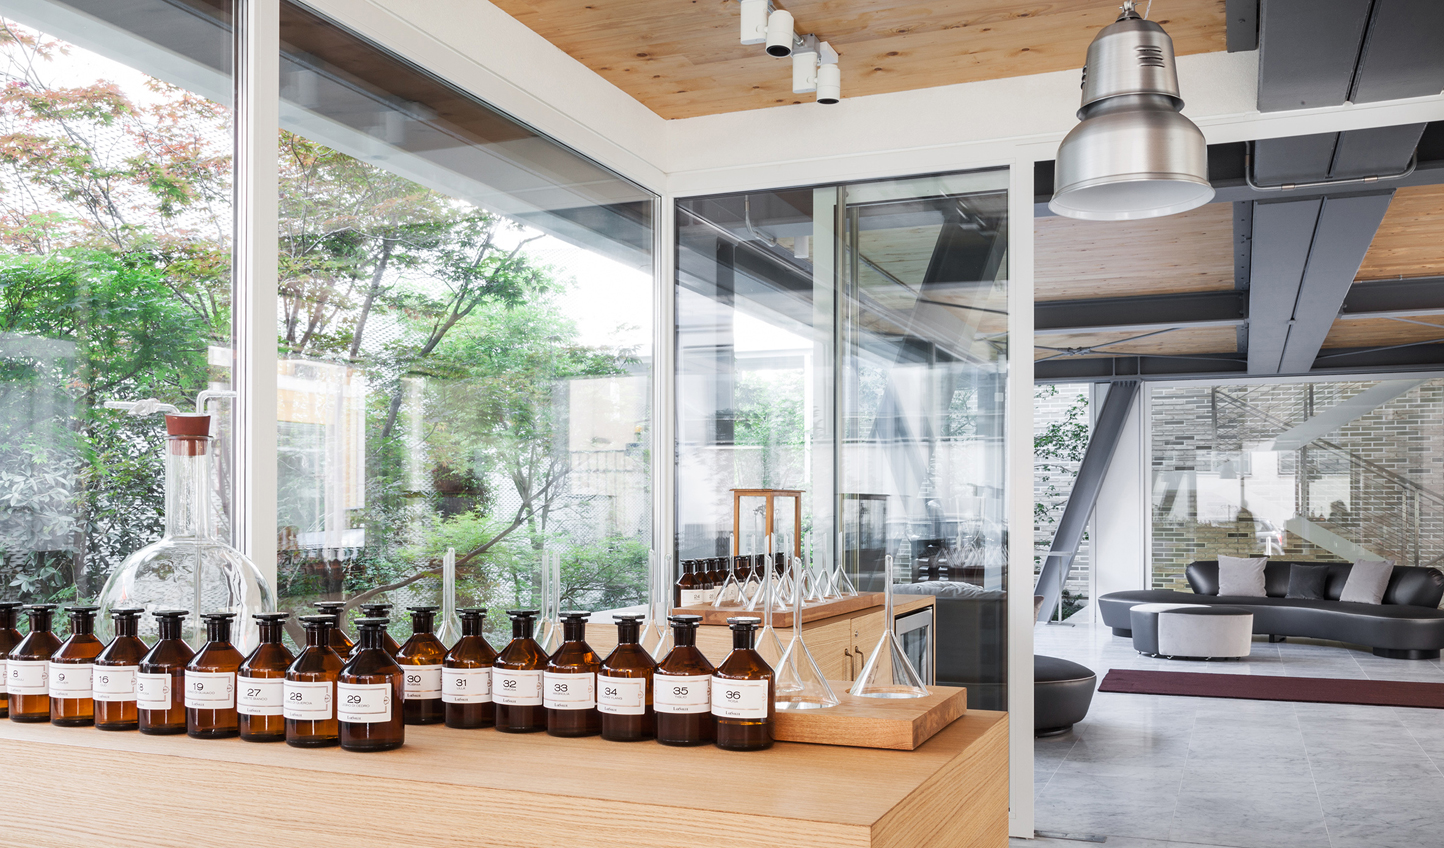 Learn the art of perfume making at LabSolue